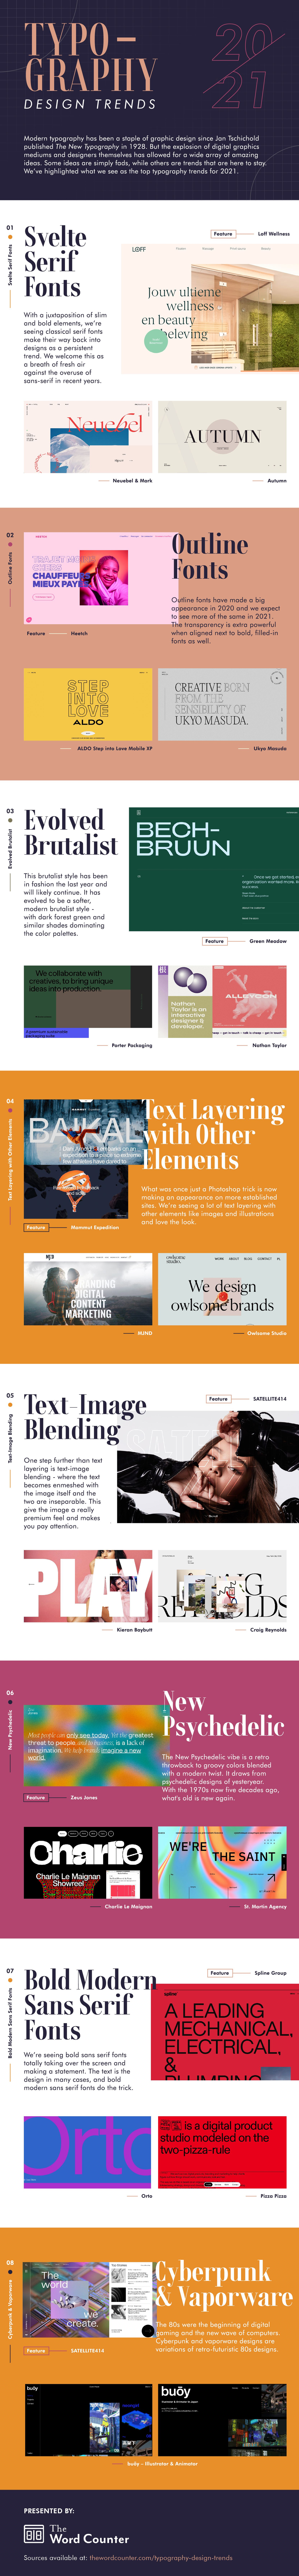 Top 8 Typography Design Trends For 2021